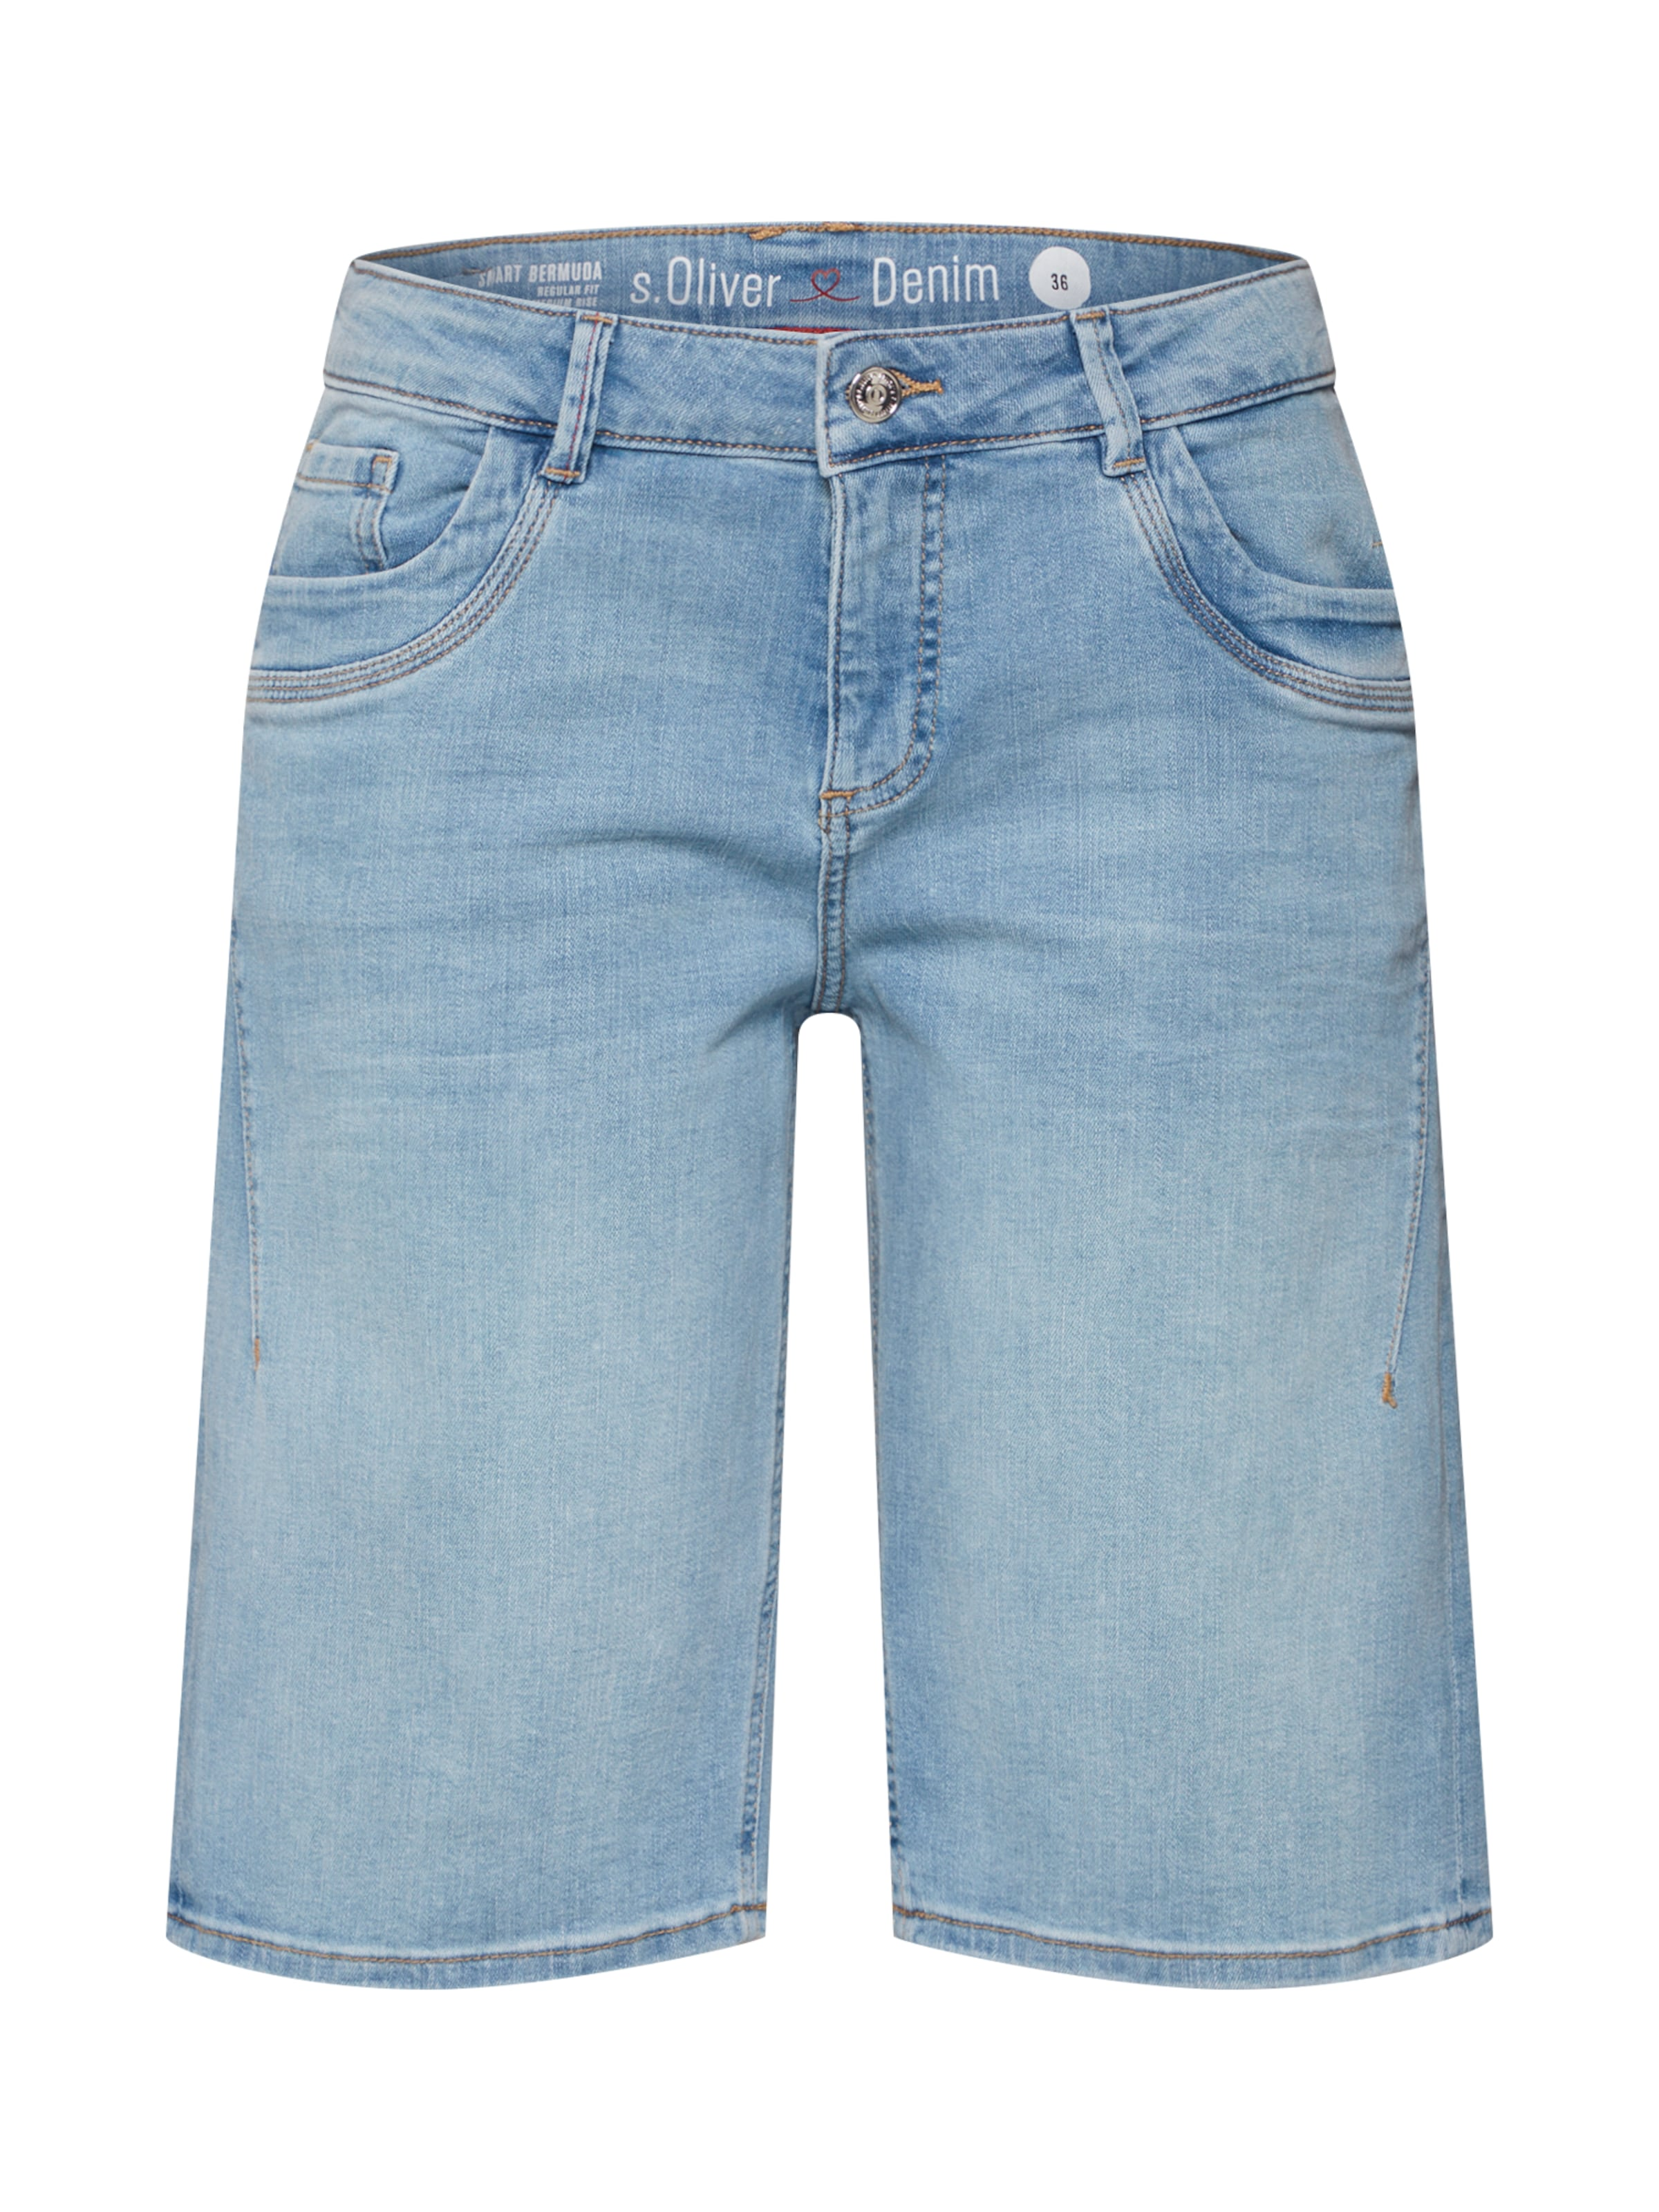 Denim Label En 'shorts' Red S oliver Bleu Jean lJK1Fu3Tc